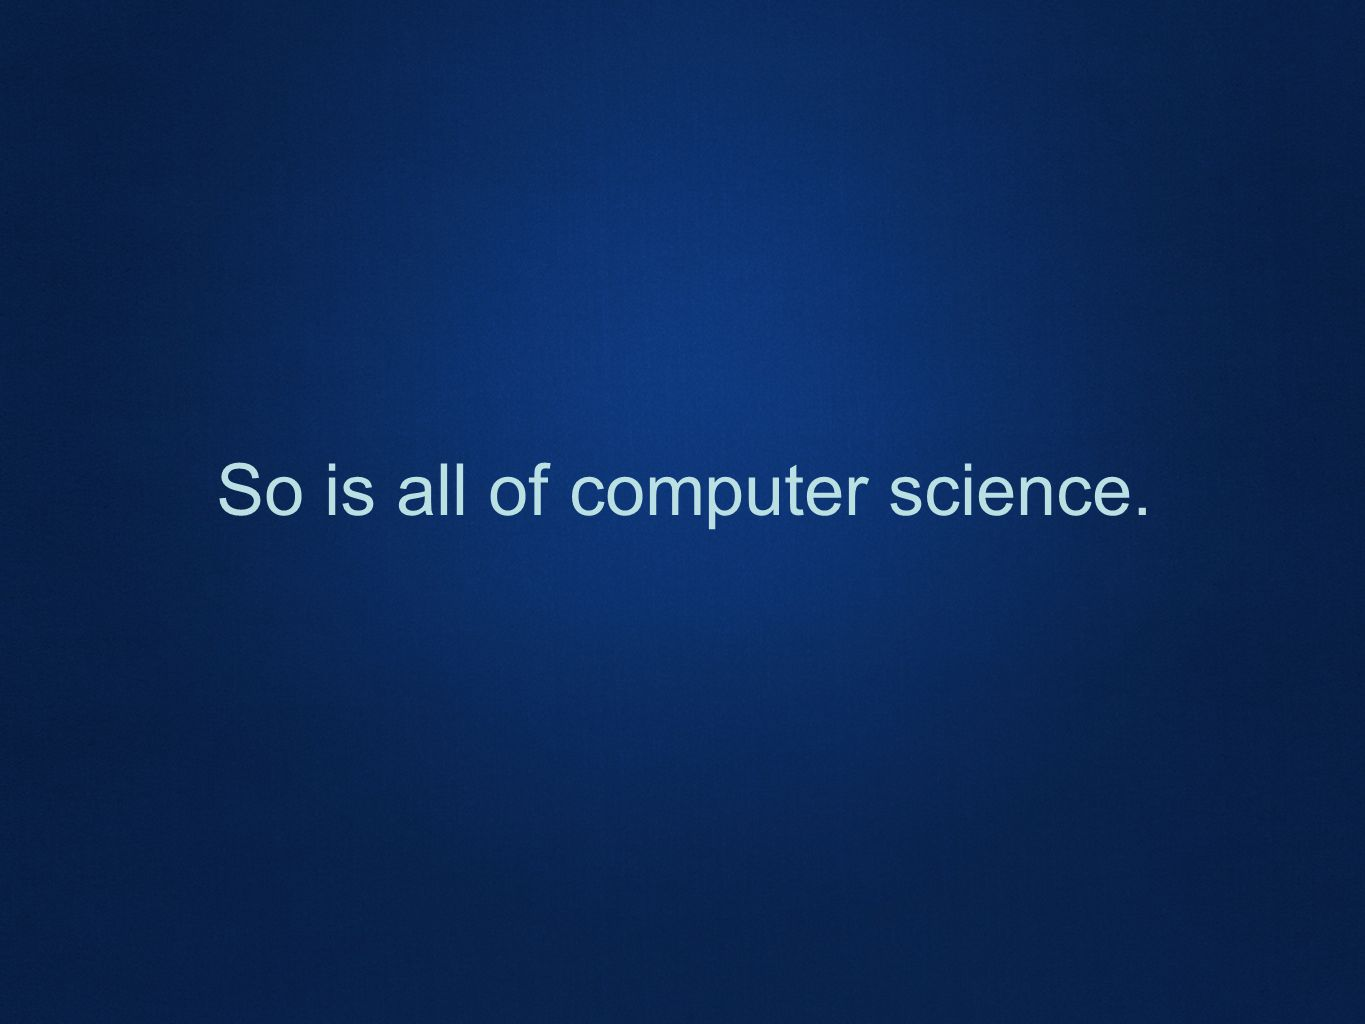 So is all of computer science.